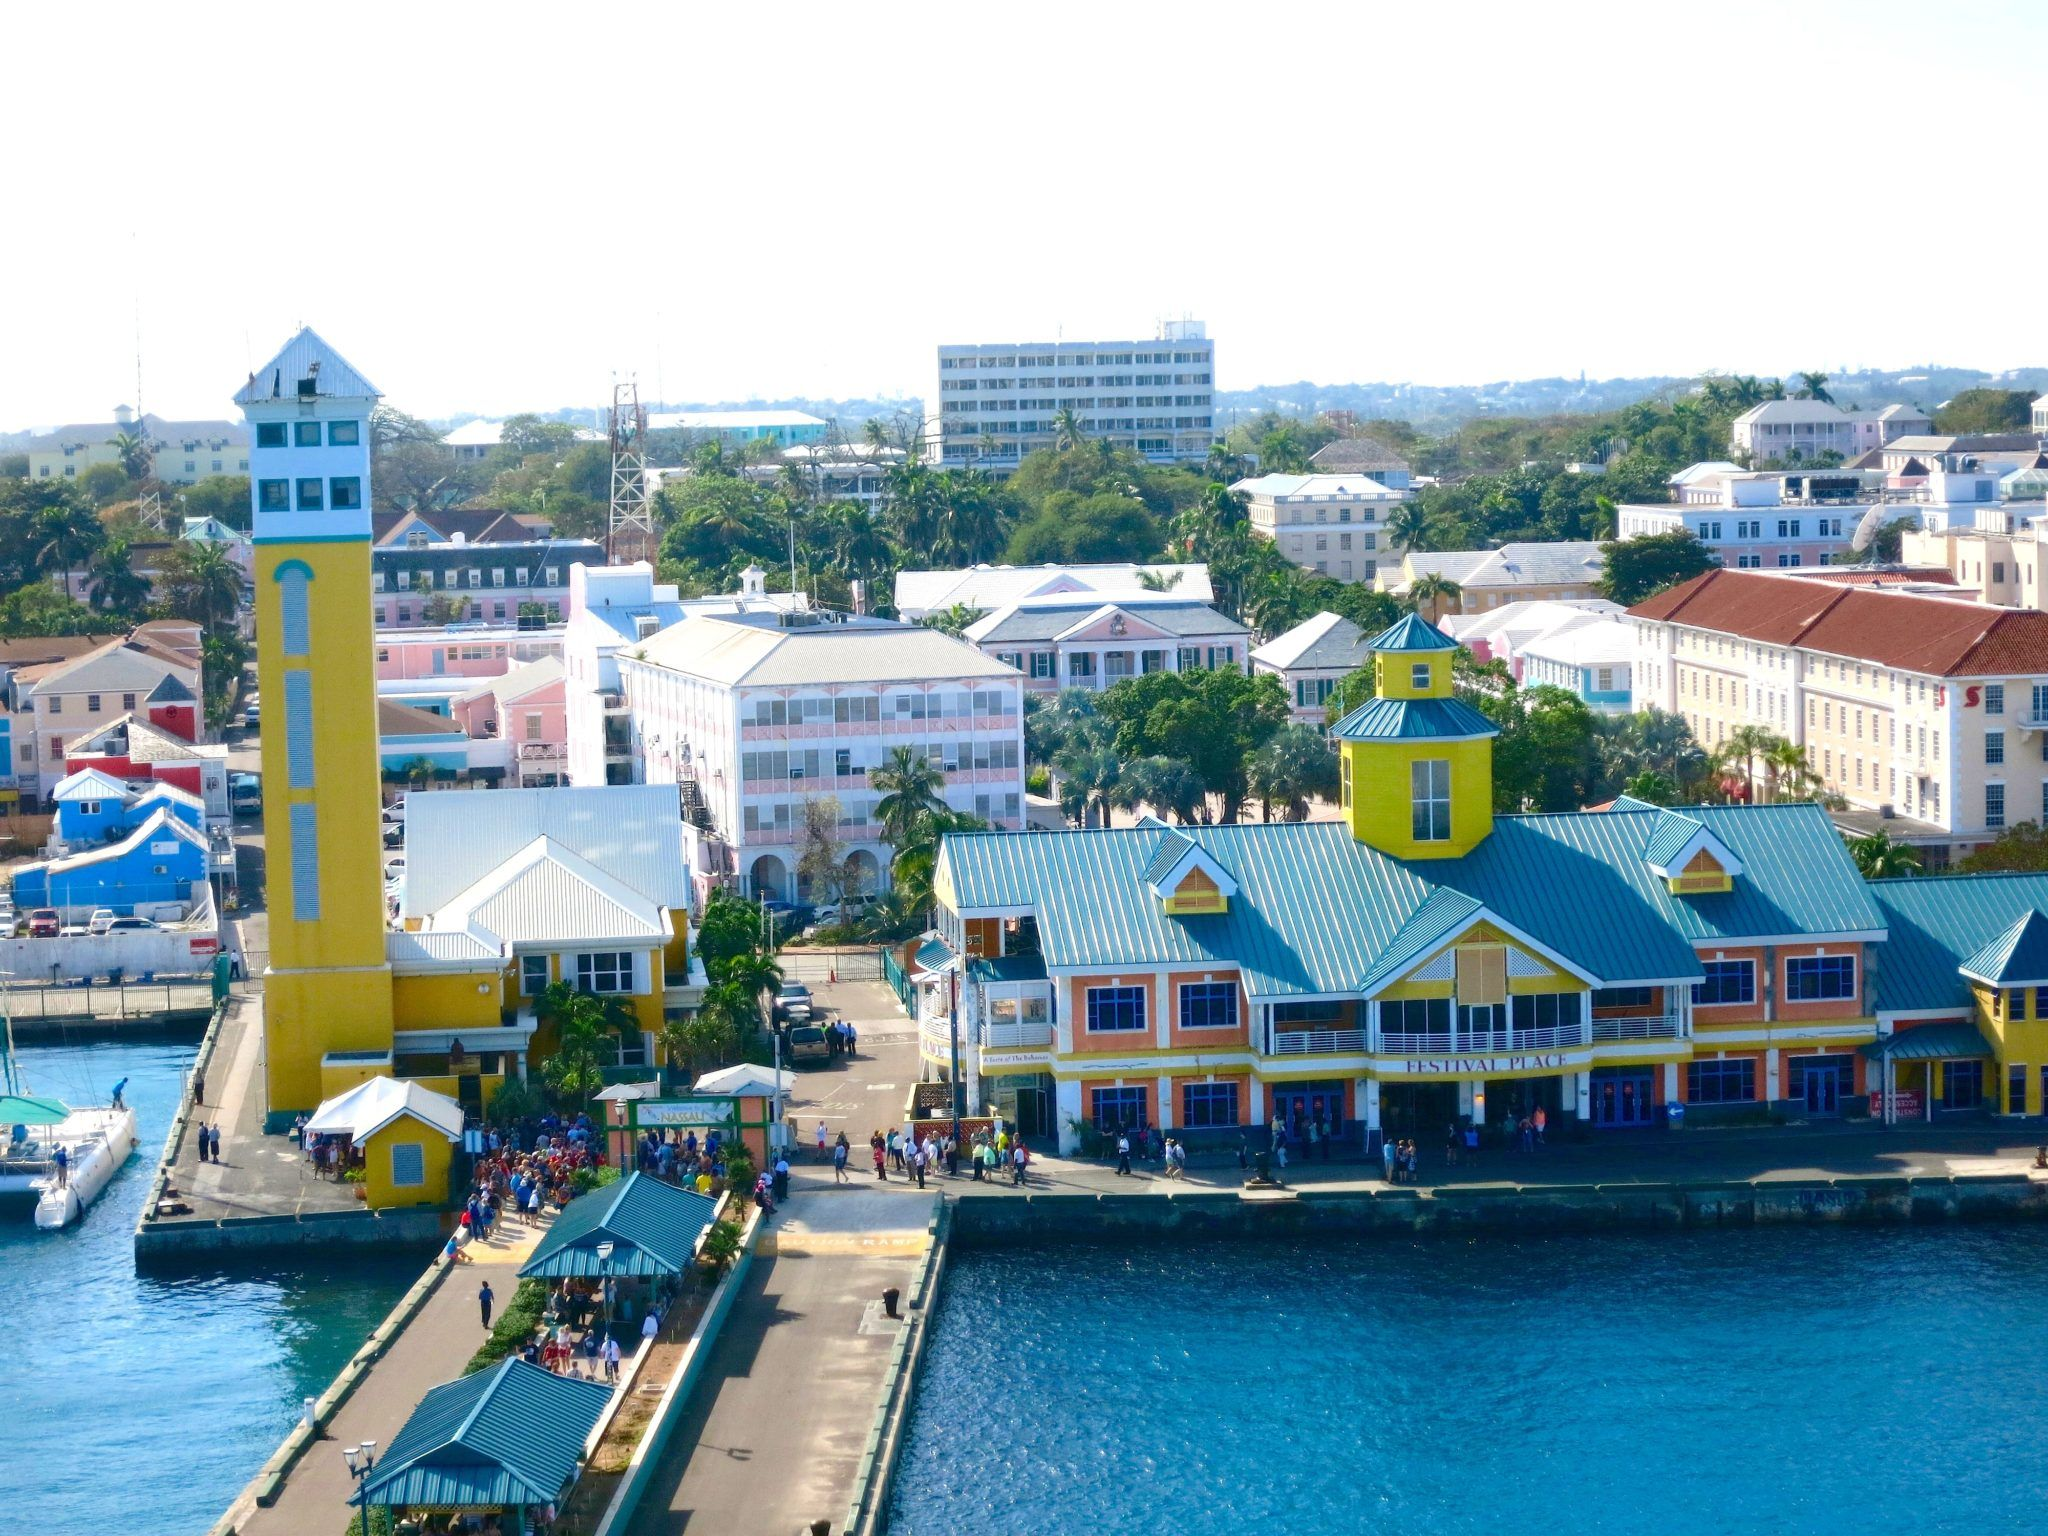 Nassau Bahamas Cruise Port is fun on any budget. Learn of a free entrance beach within walking distance from the cruise port and other tips of things to do in Nassau Bahamas on a budget. Plan ahead with this guide to Nassau Bahamas cruise port.